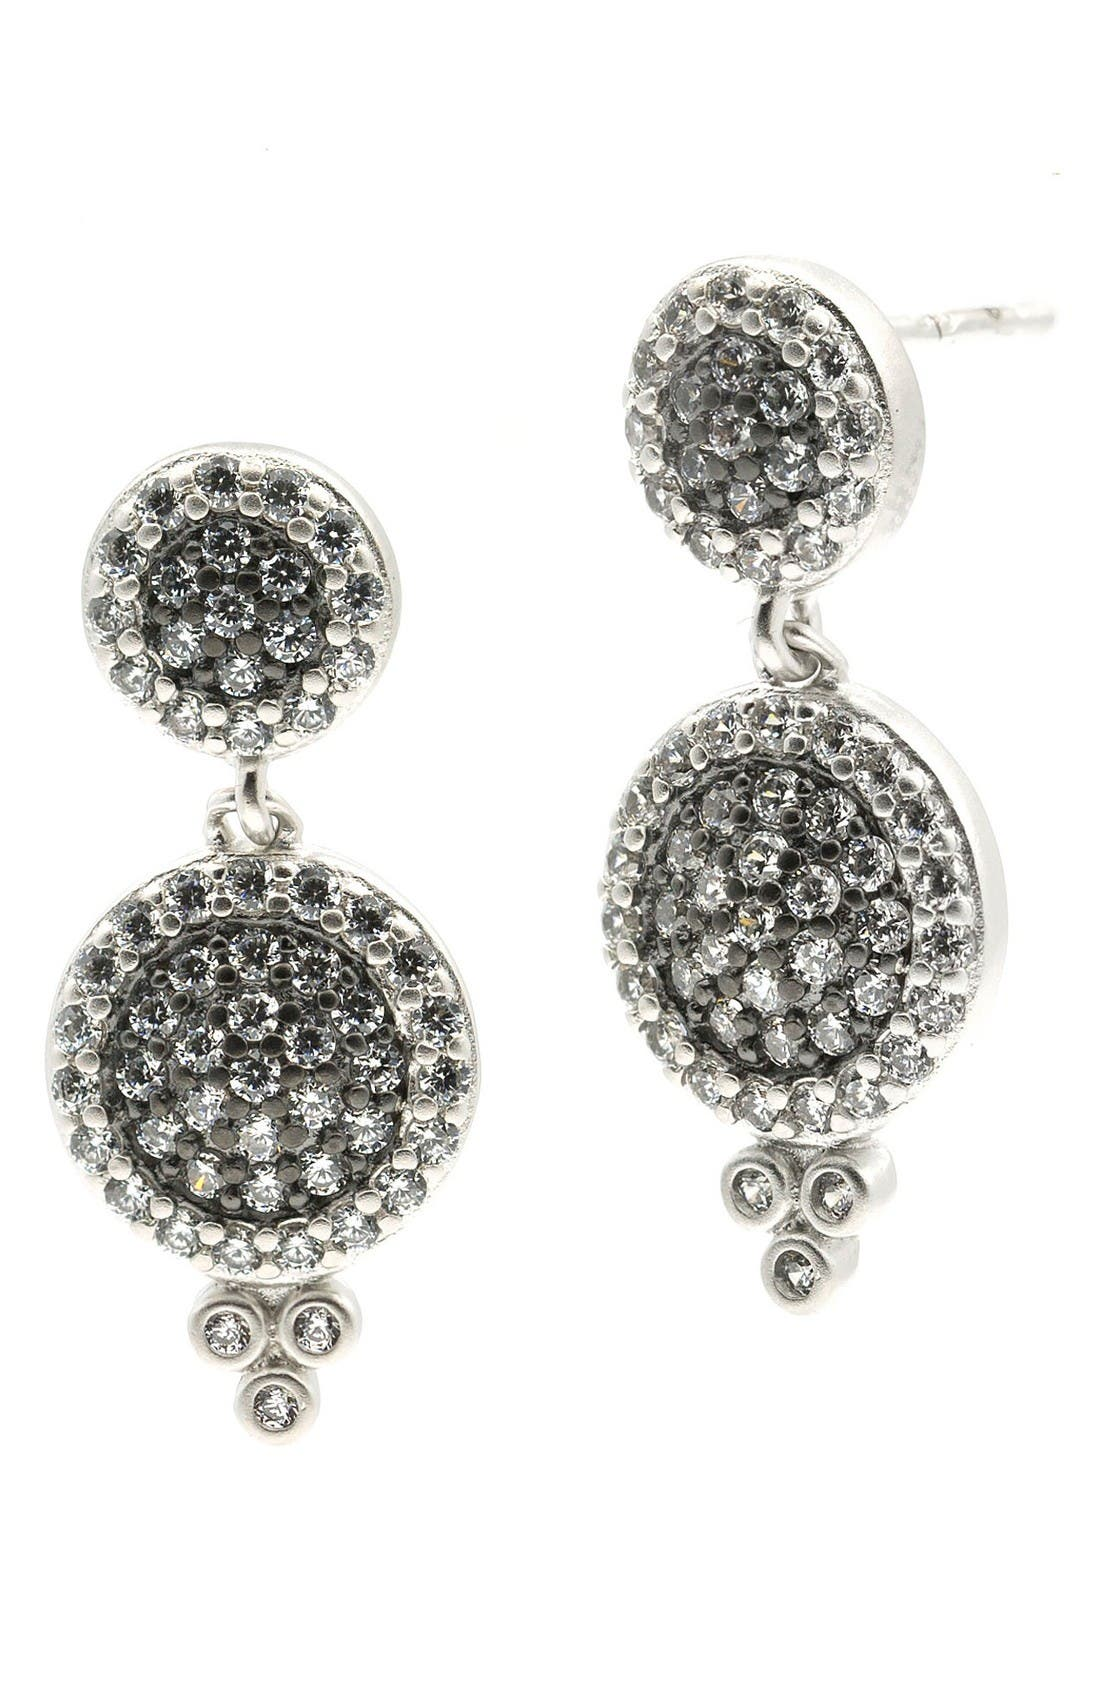 Main Image - FREIDA ROTHMAN 'Metropolitan' Drop Earrings